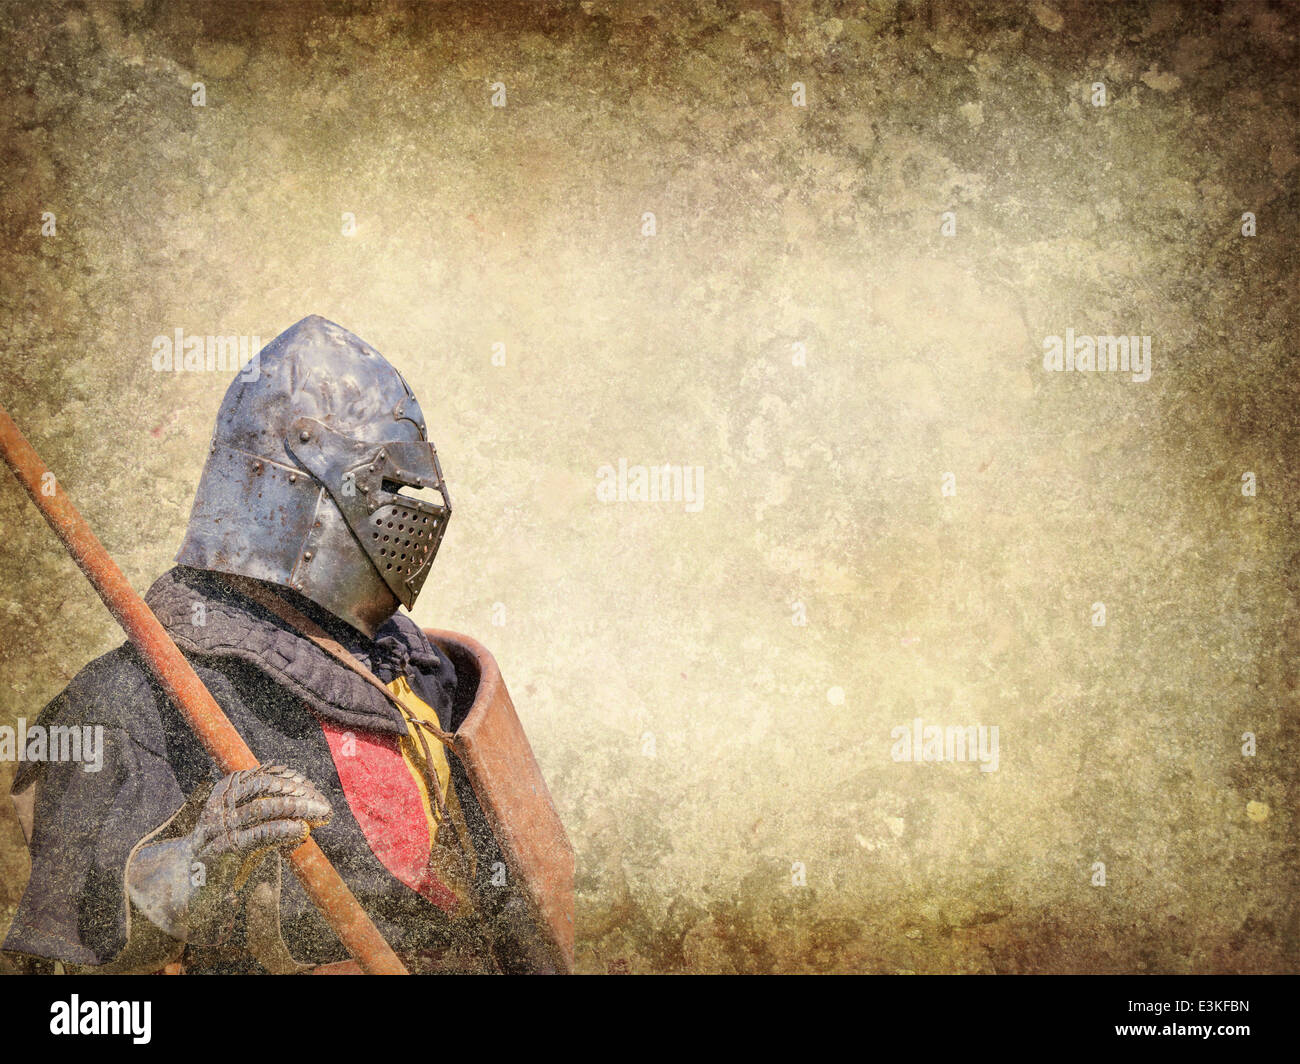 Armored knight - retro postcard on vintage paper background - Stock Image